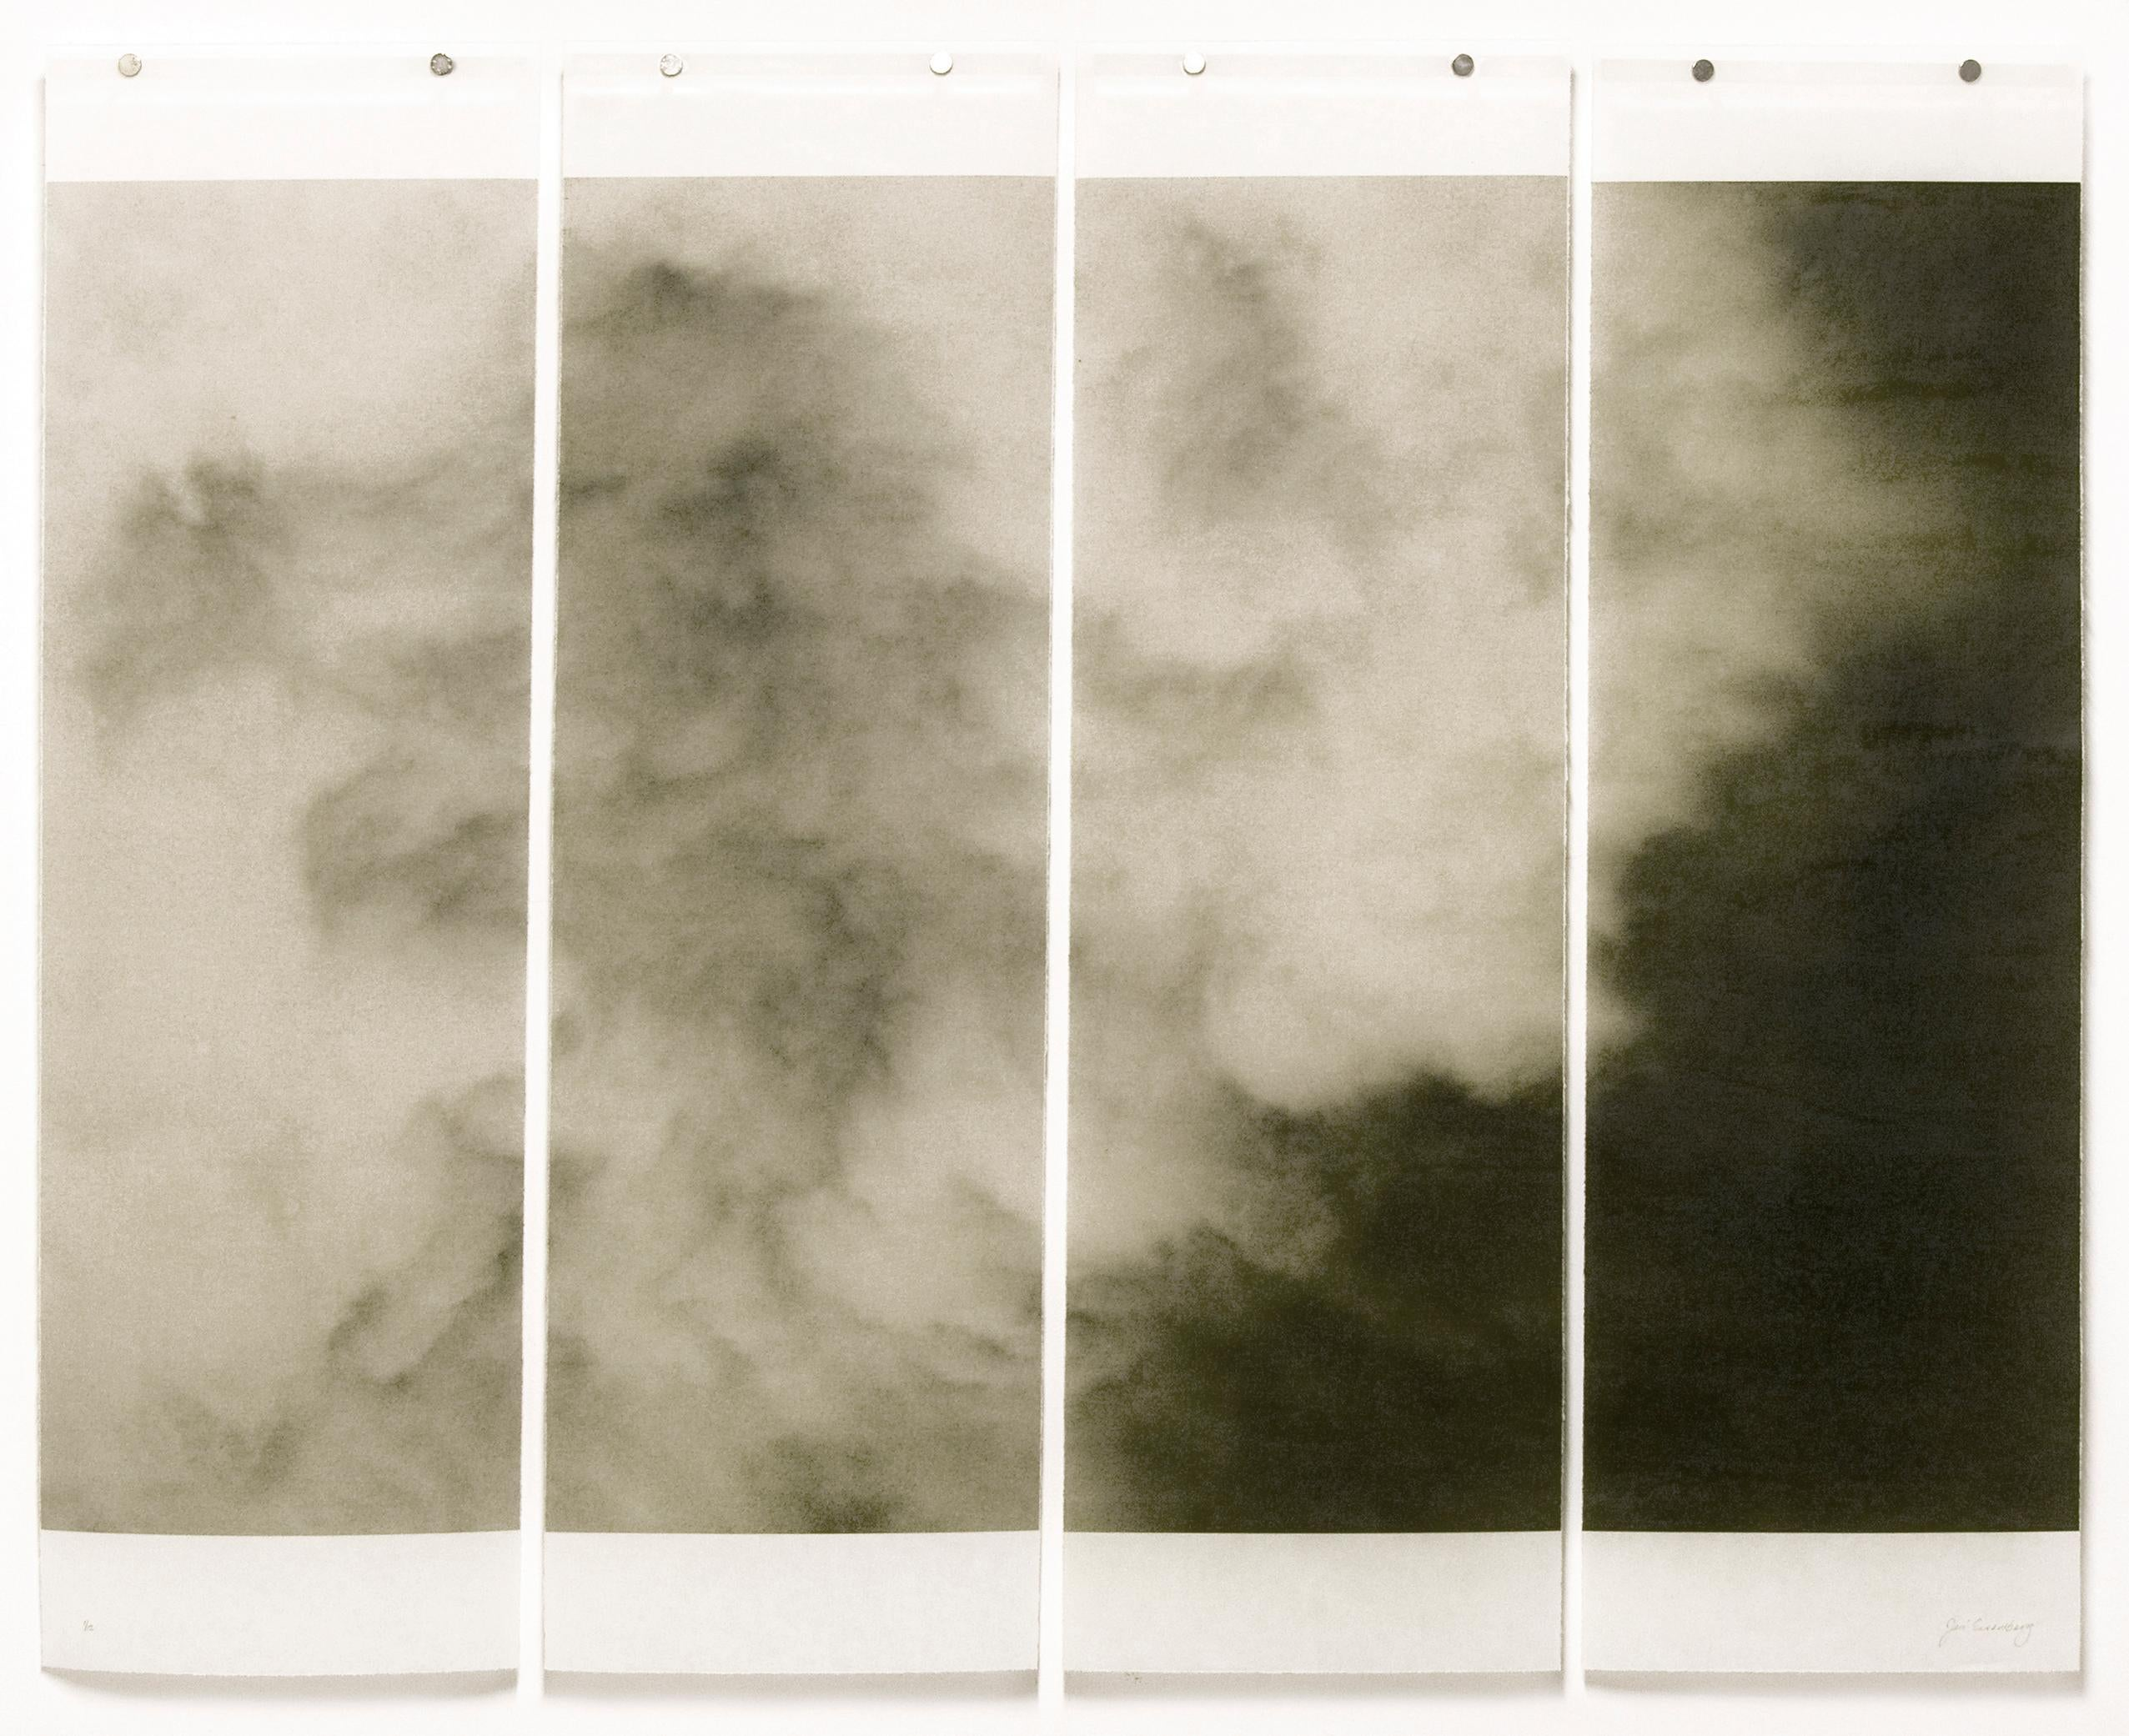 Songs of the Sky 4 (Abstract Landscape Photograph of Clouds & Sky, 4 panels)